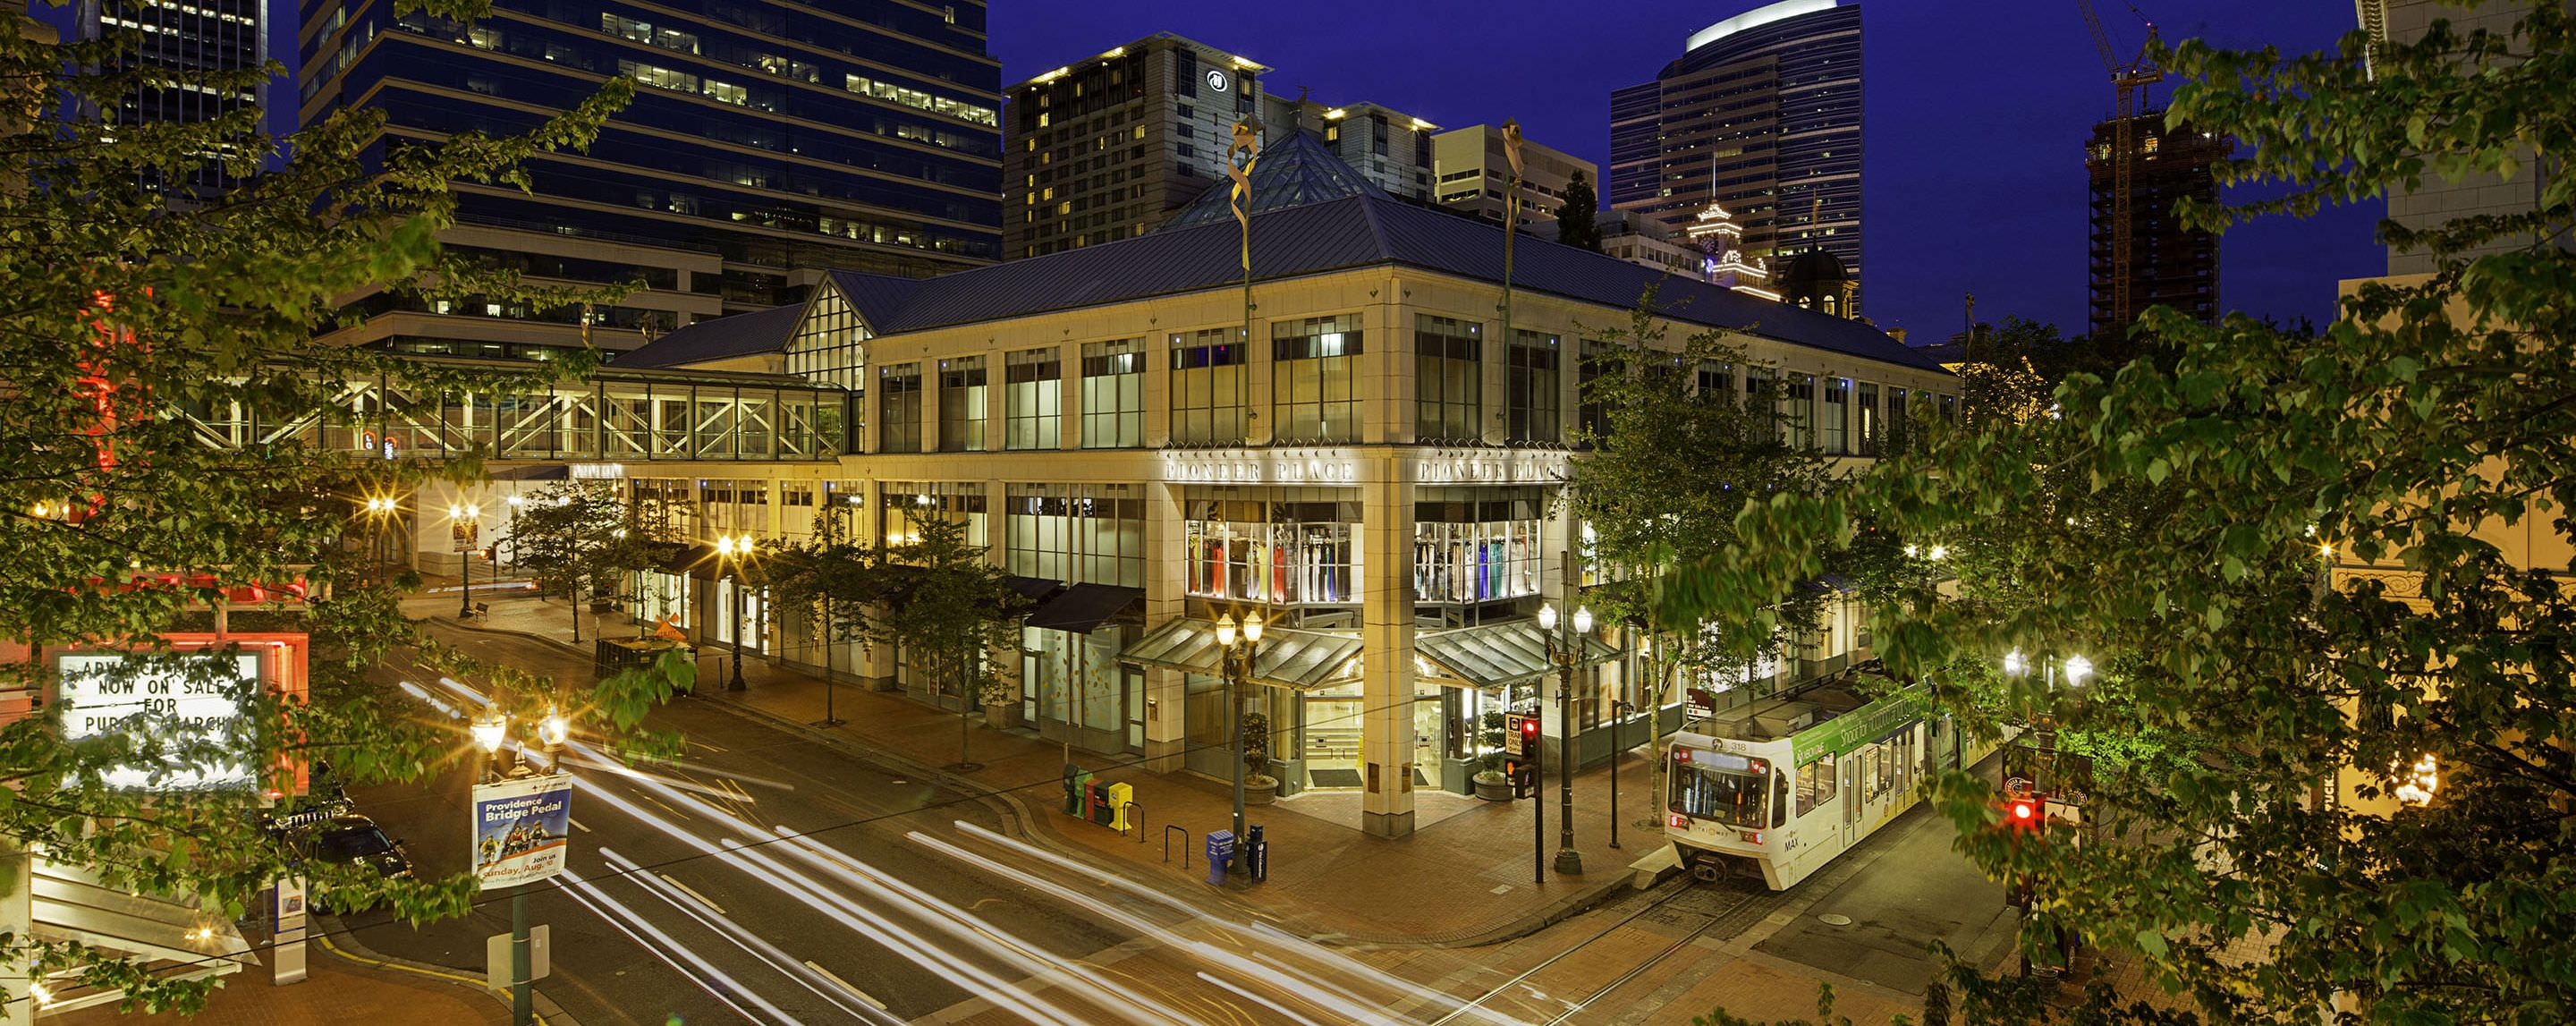 A GGP property illuminates the night with busy streets and public transportation outside.